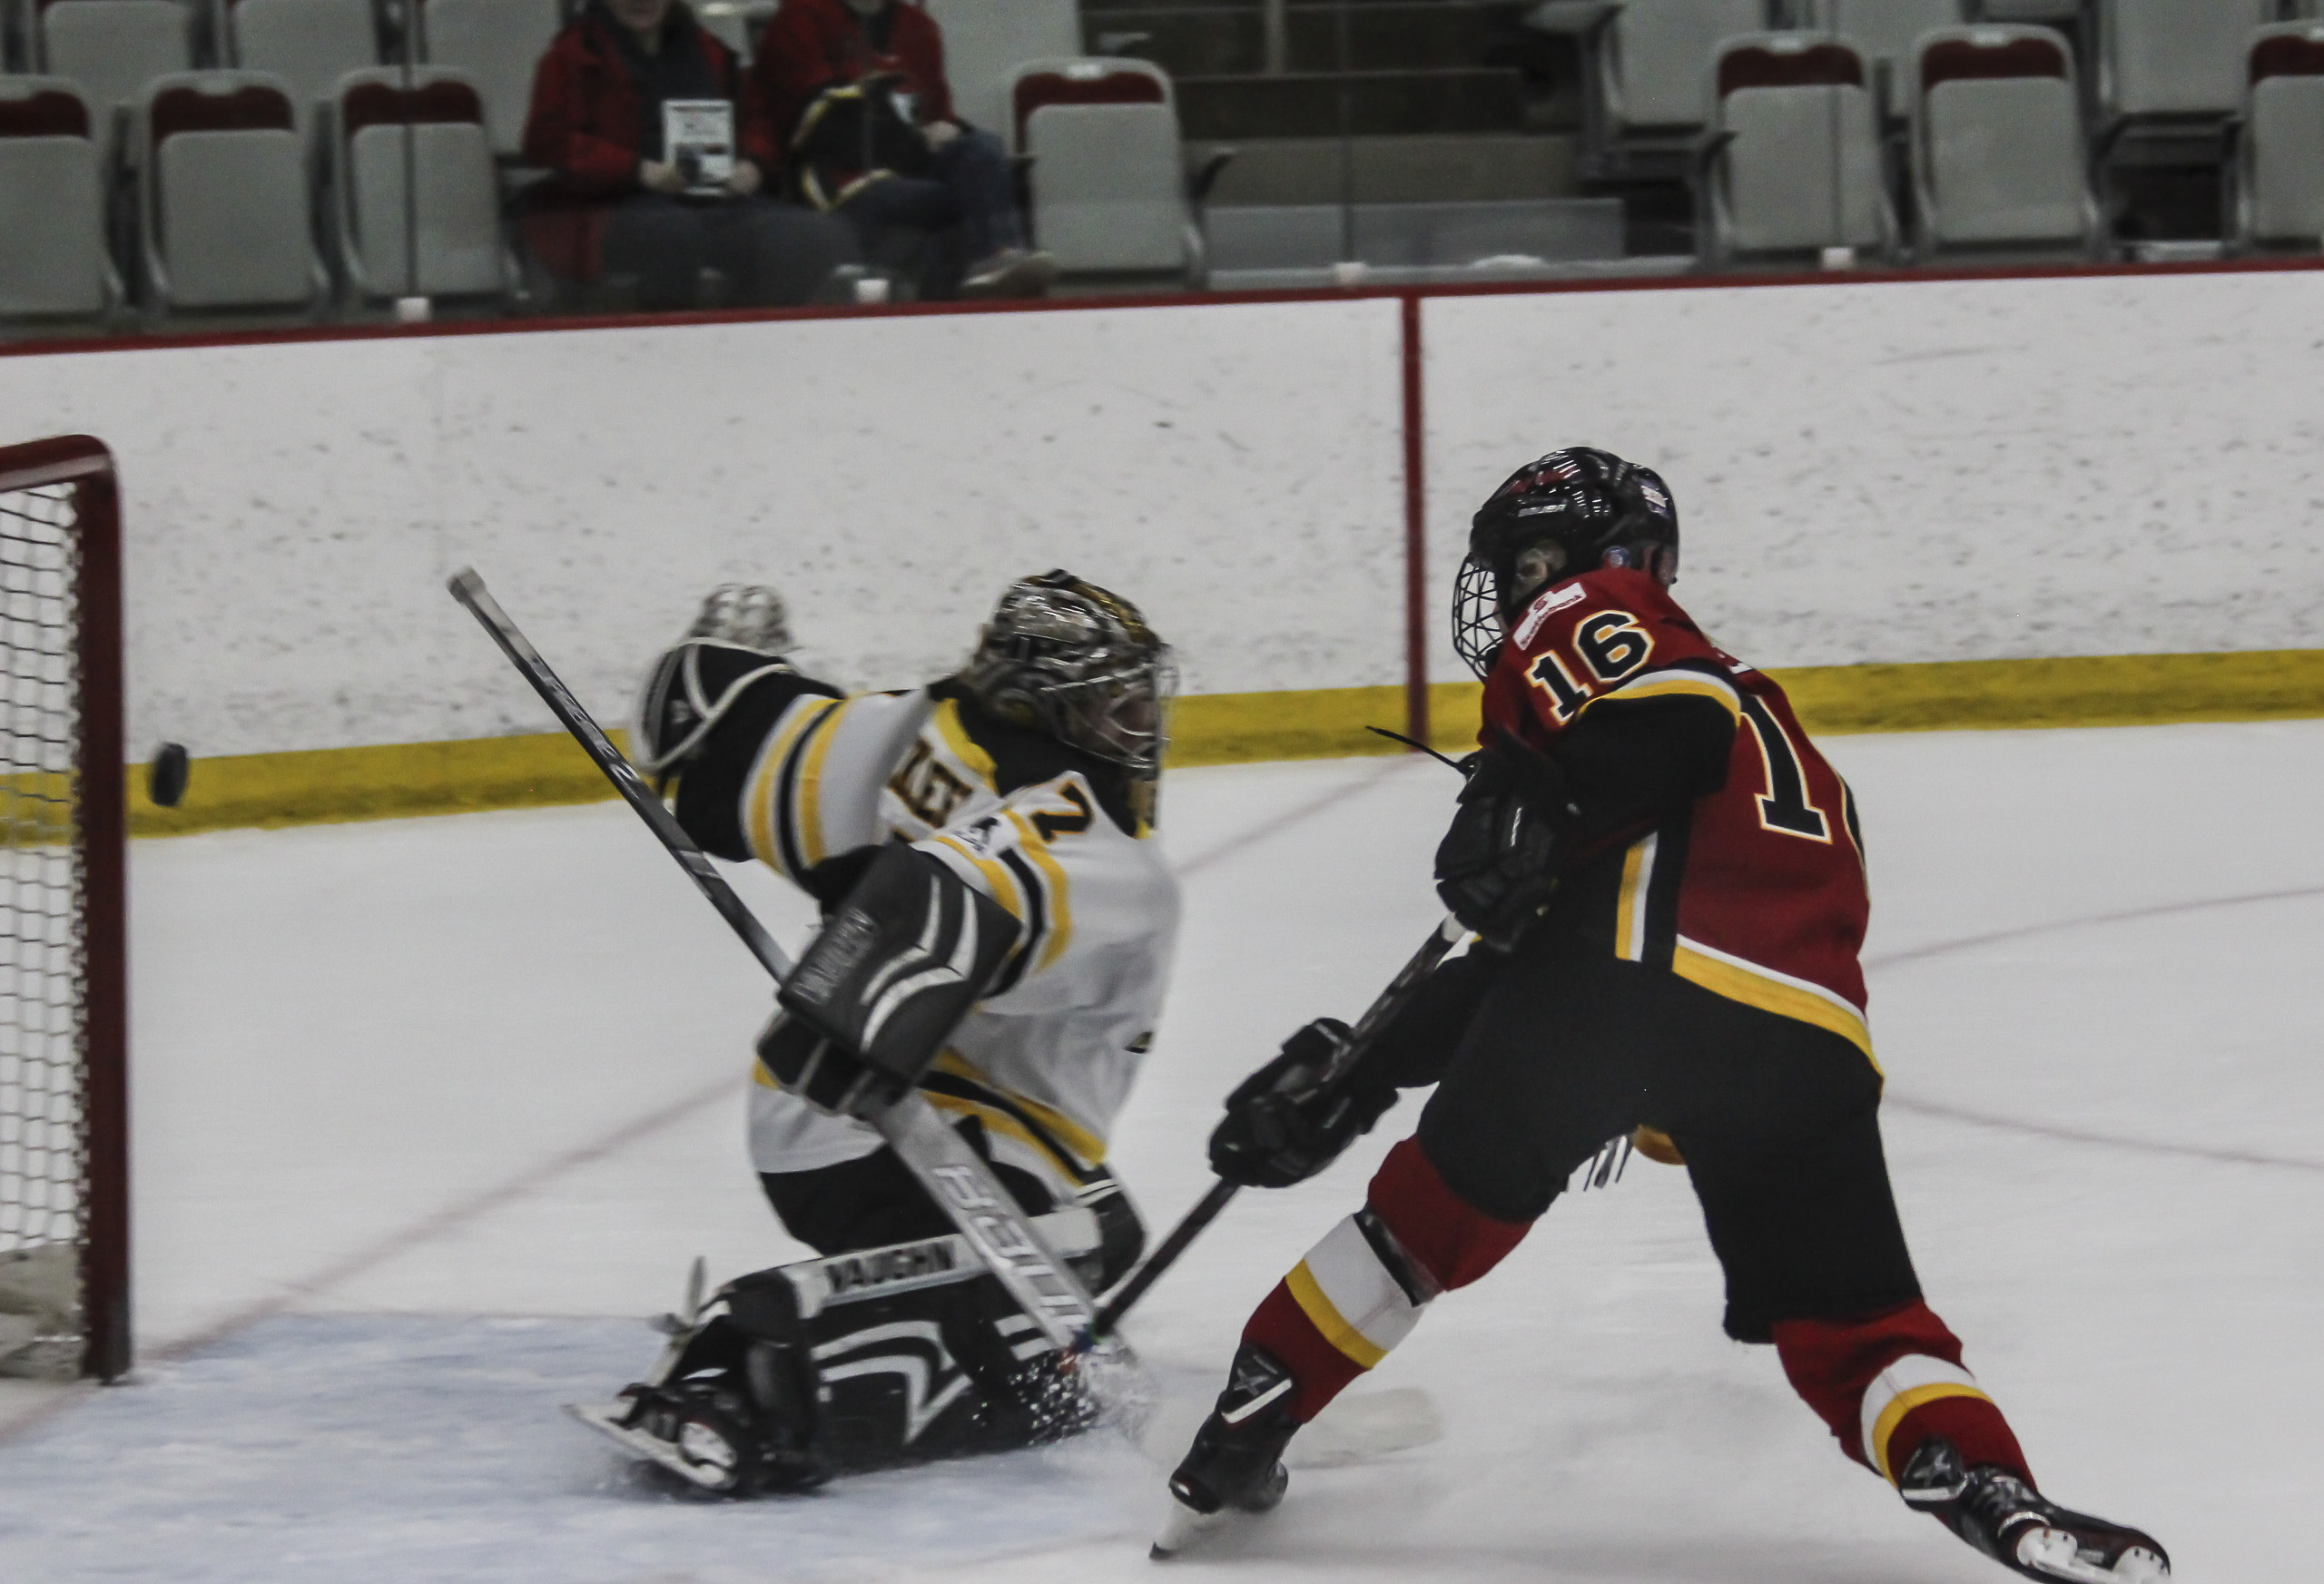 Calgary Inferno forward Rebecca Leslie scores against the Worcester Blades during a game in Calgary on Sunday, Feb. 10, 2019. Leslie scored twice in the game, which the Inferno won 10-0. (Photo by Alex Hamilton/The Press)